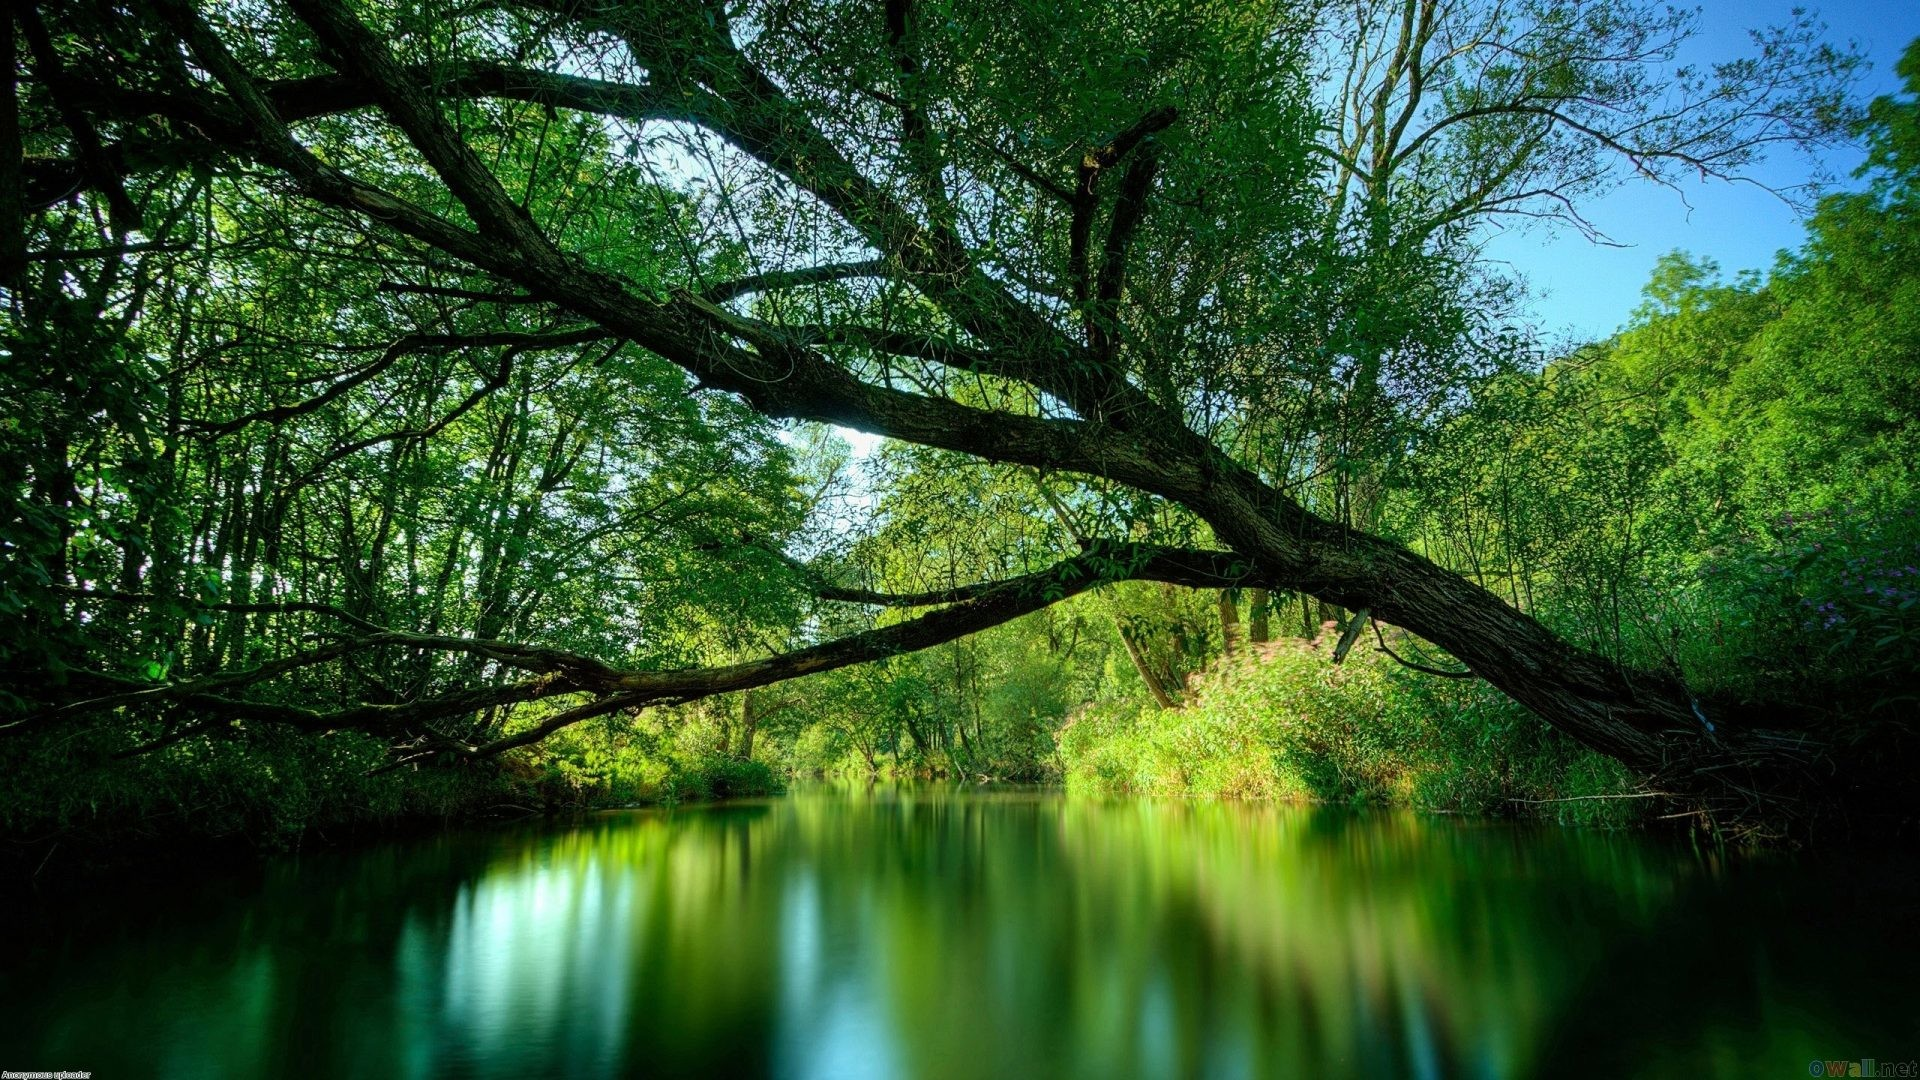 Lakes – Nature Wallpaper For Computer for HD 16:9 High Definition 1080p  900p 720p